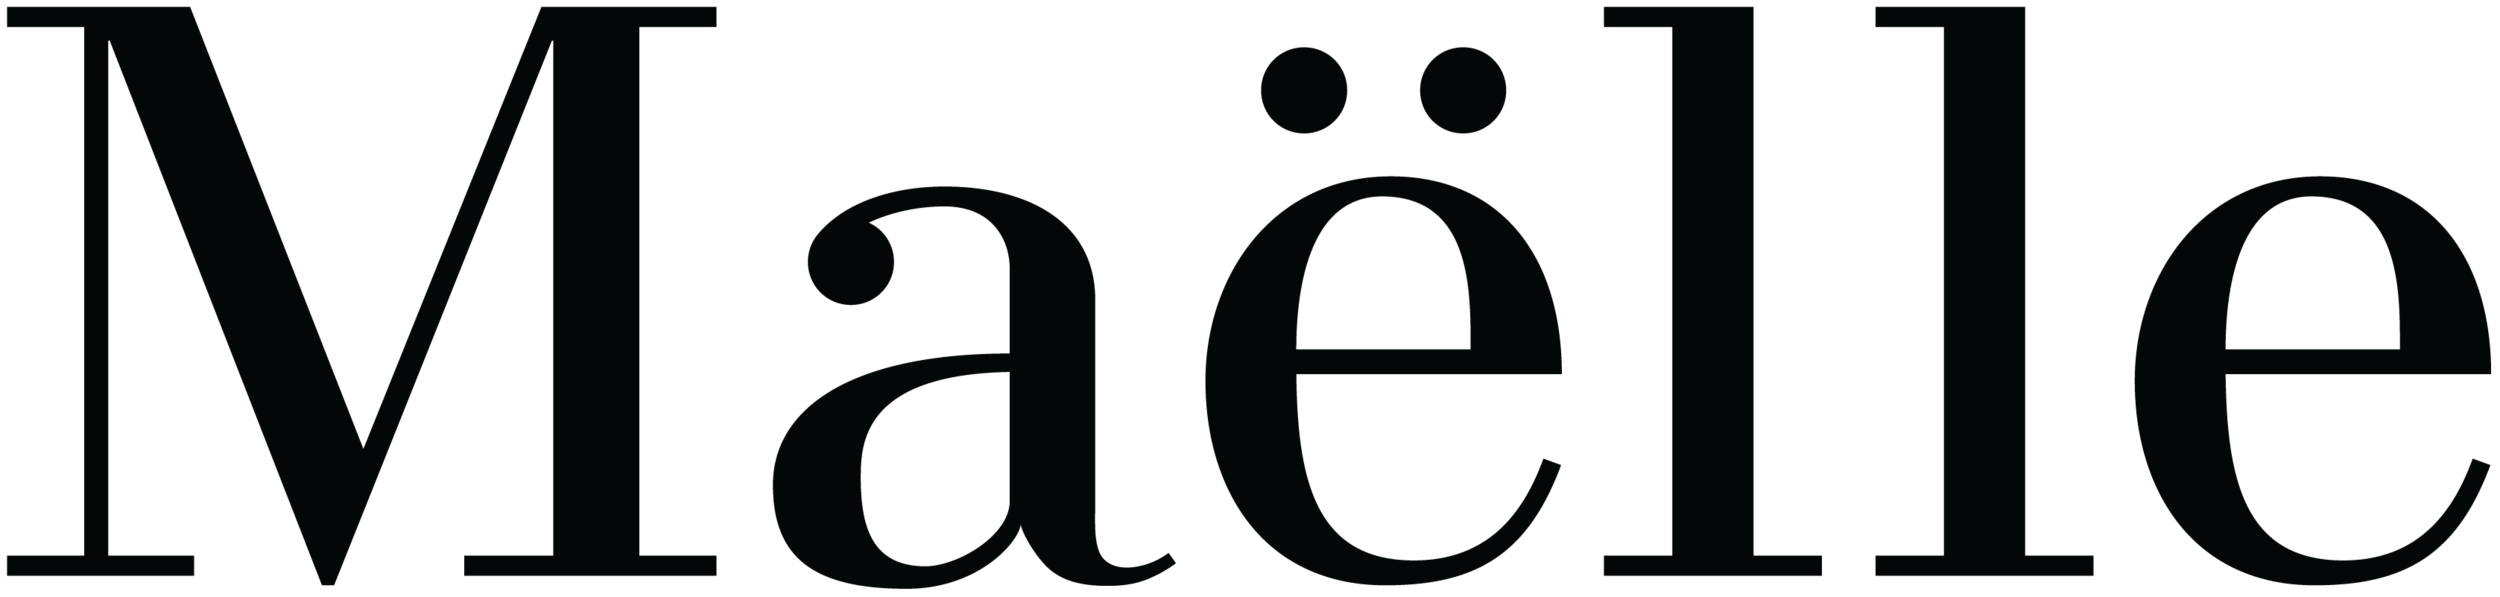 Maelle_logotype.png